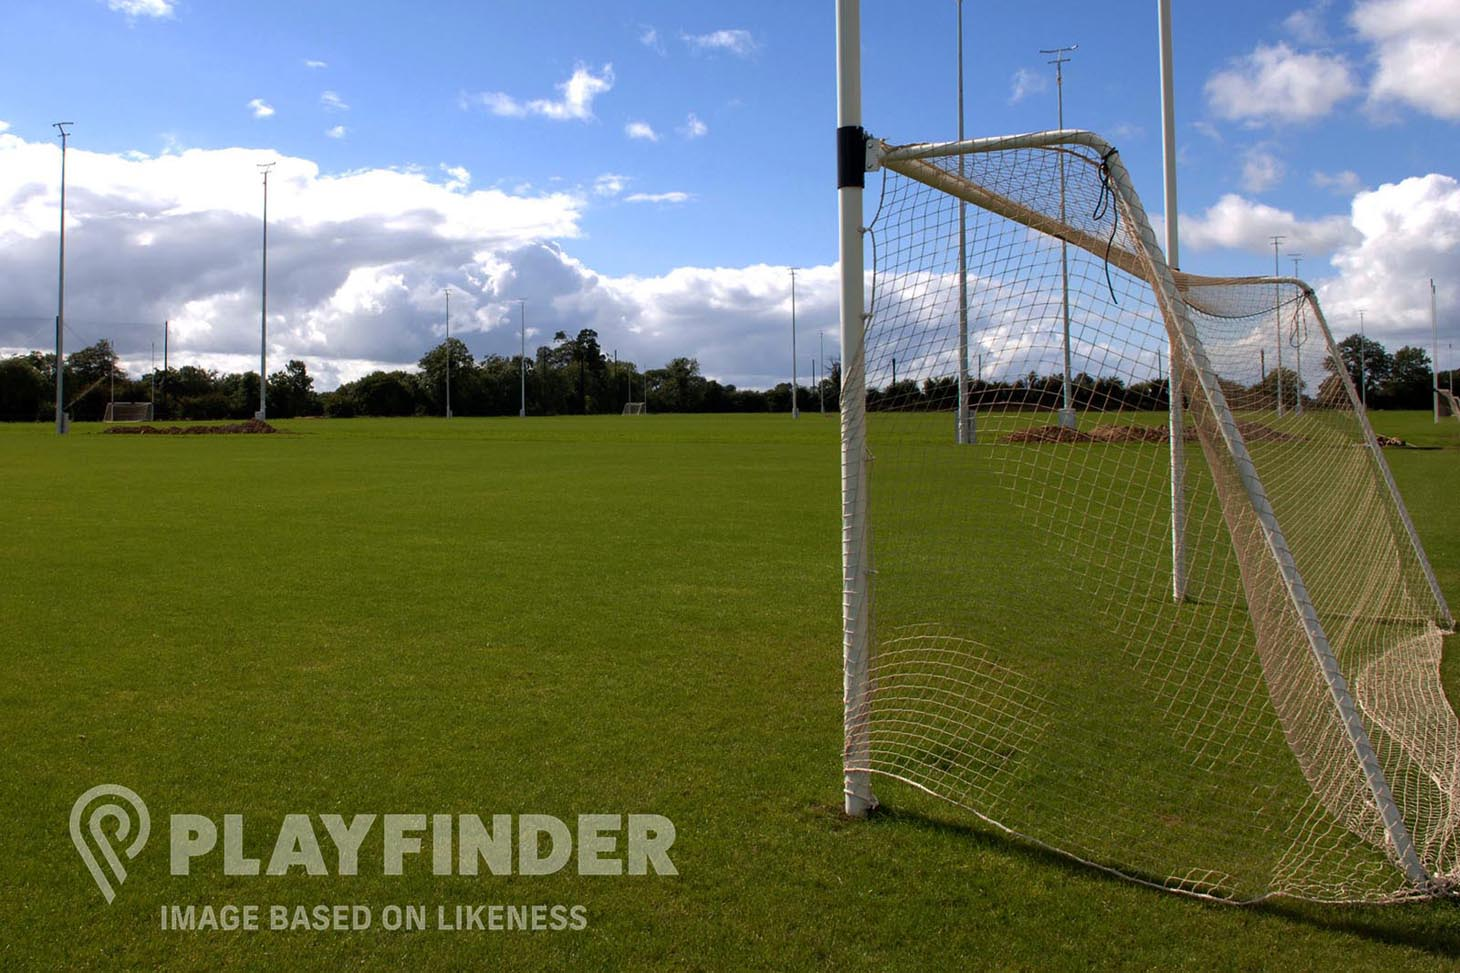 National Sports Campus Full size | 3G Astroturf gaa pitch